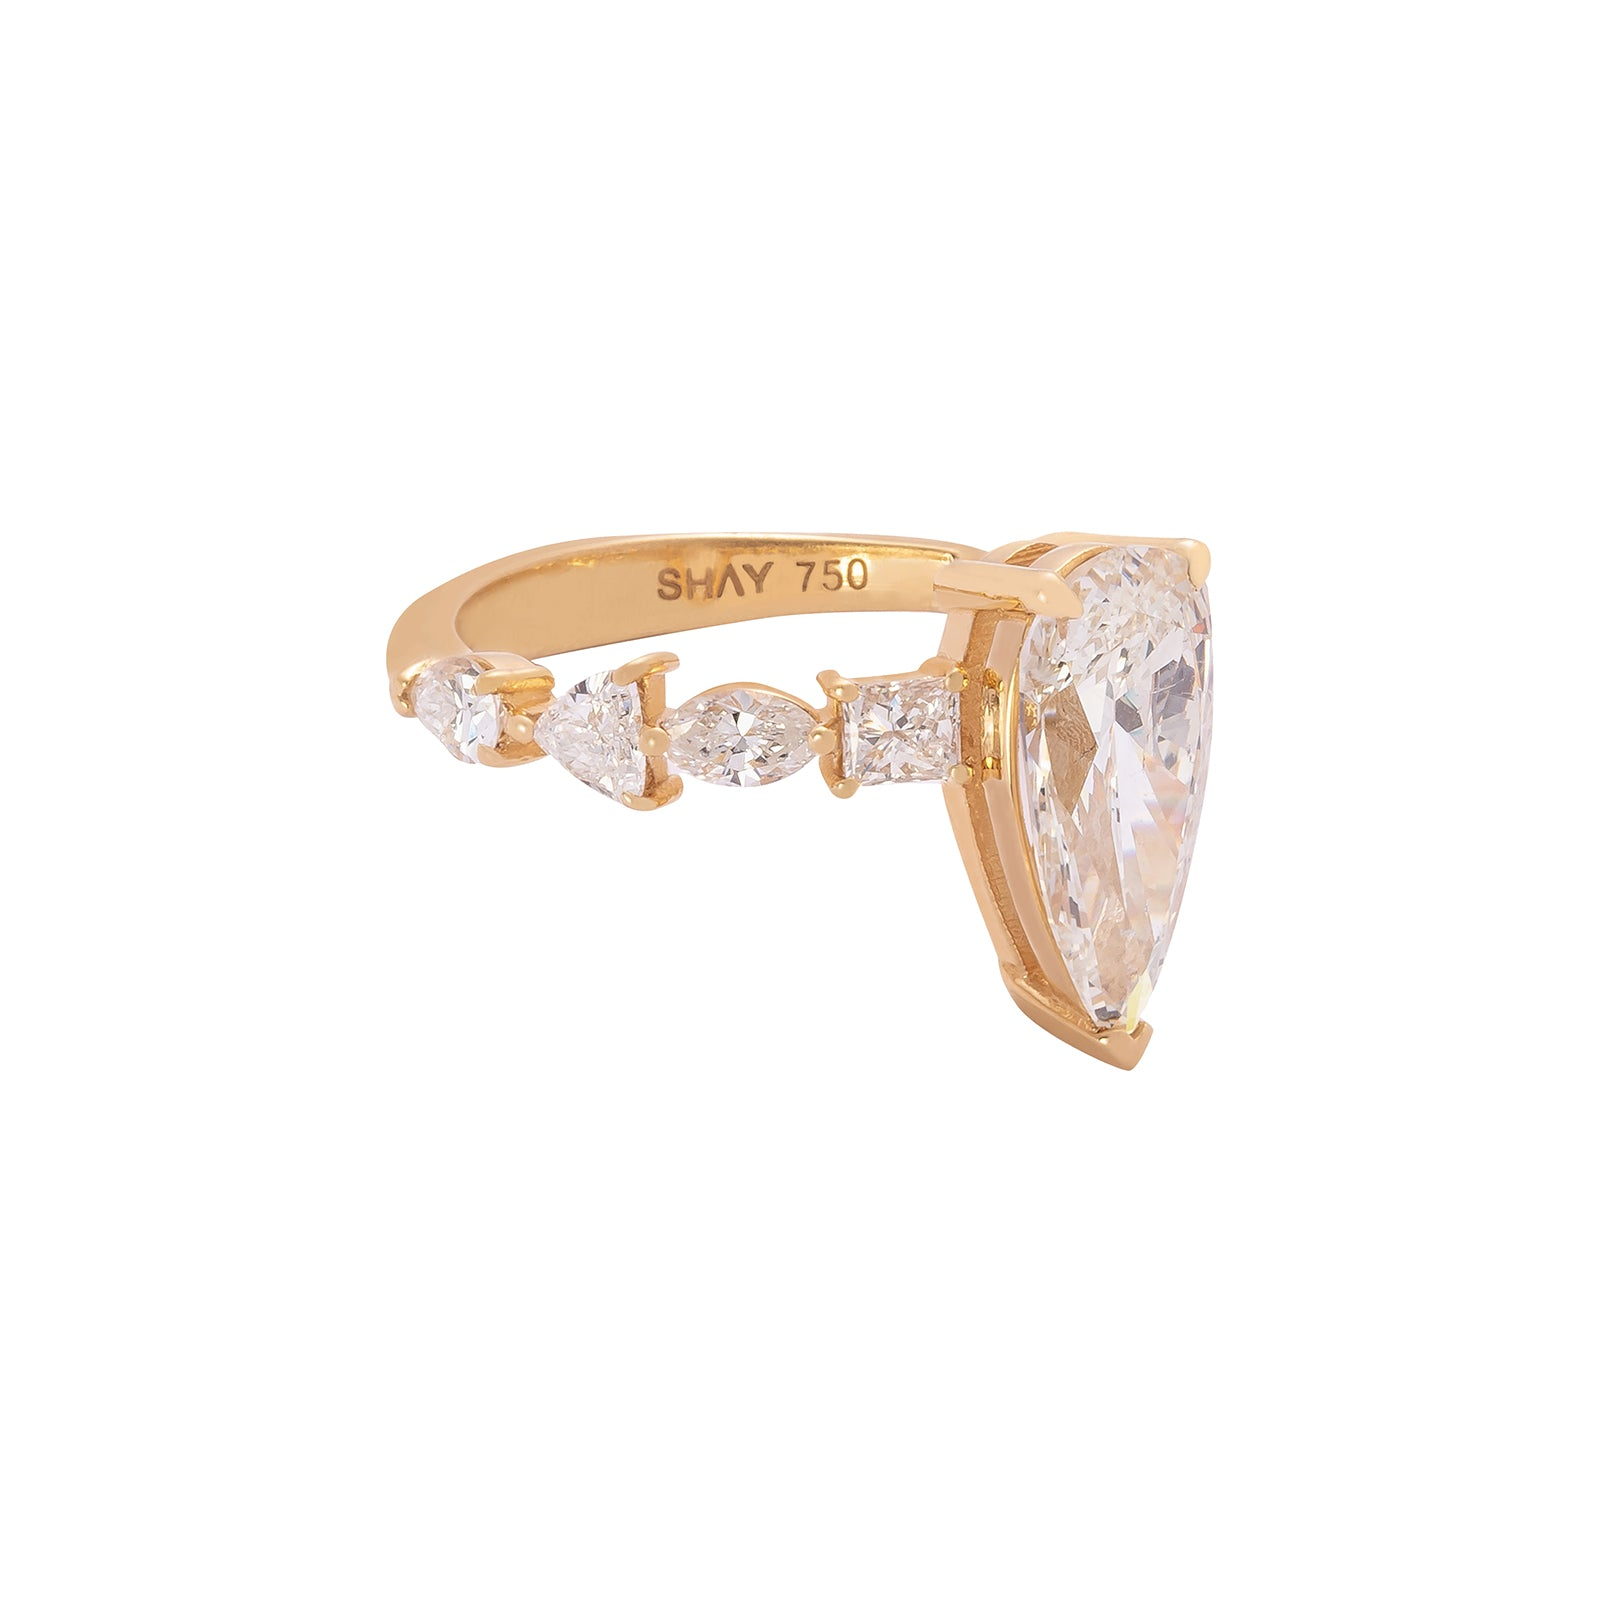 Shay Elongated Pear Diamond Ring - Rings - Broken English Jewelry